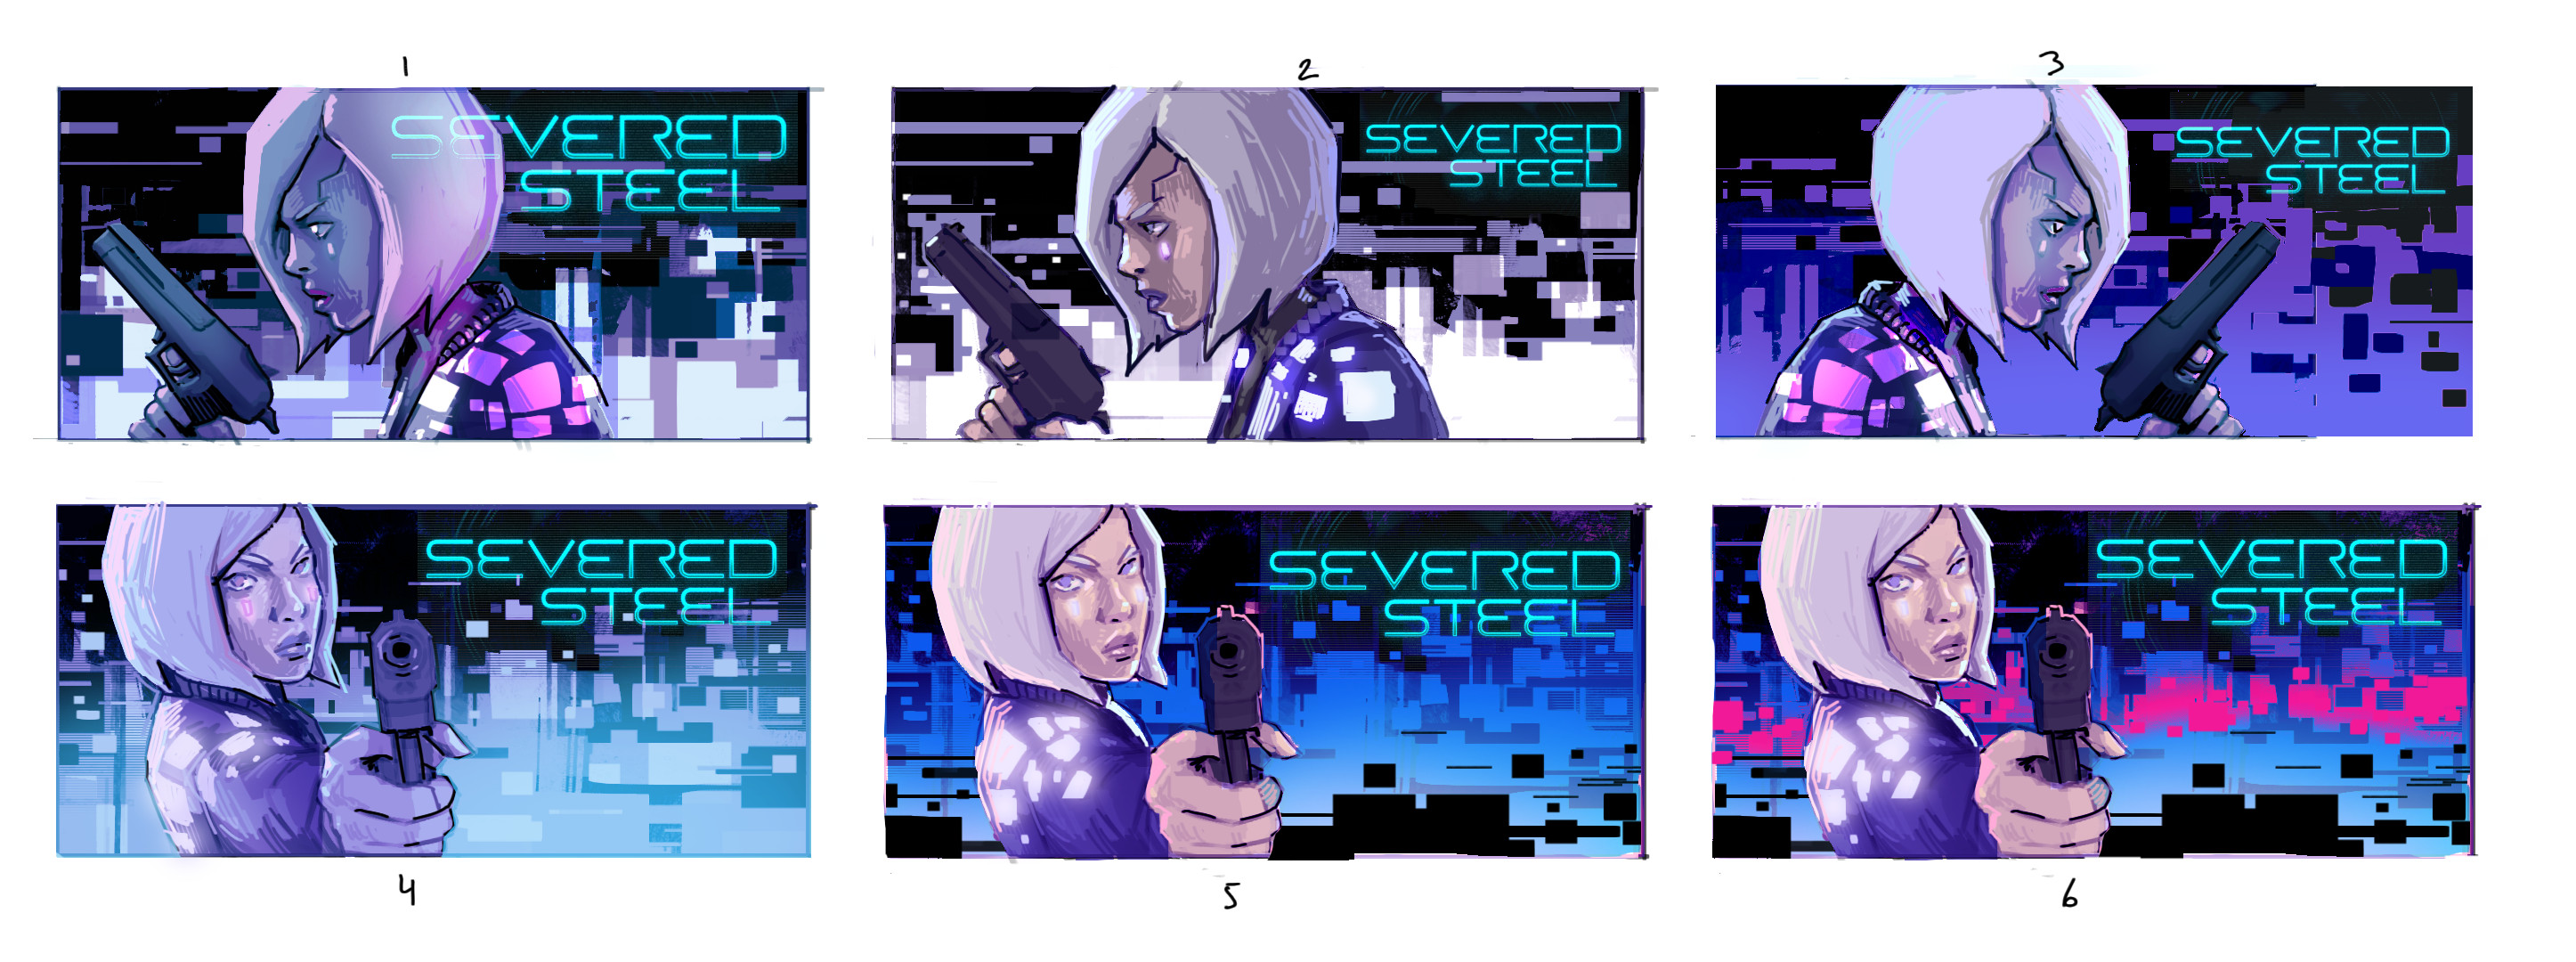 A selection of the thumbnails with rough color scheme